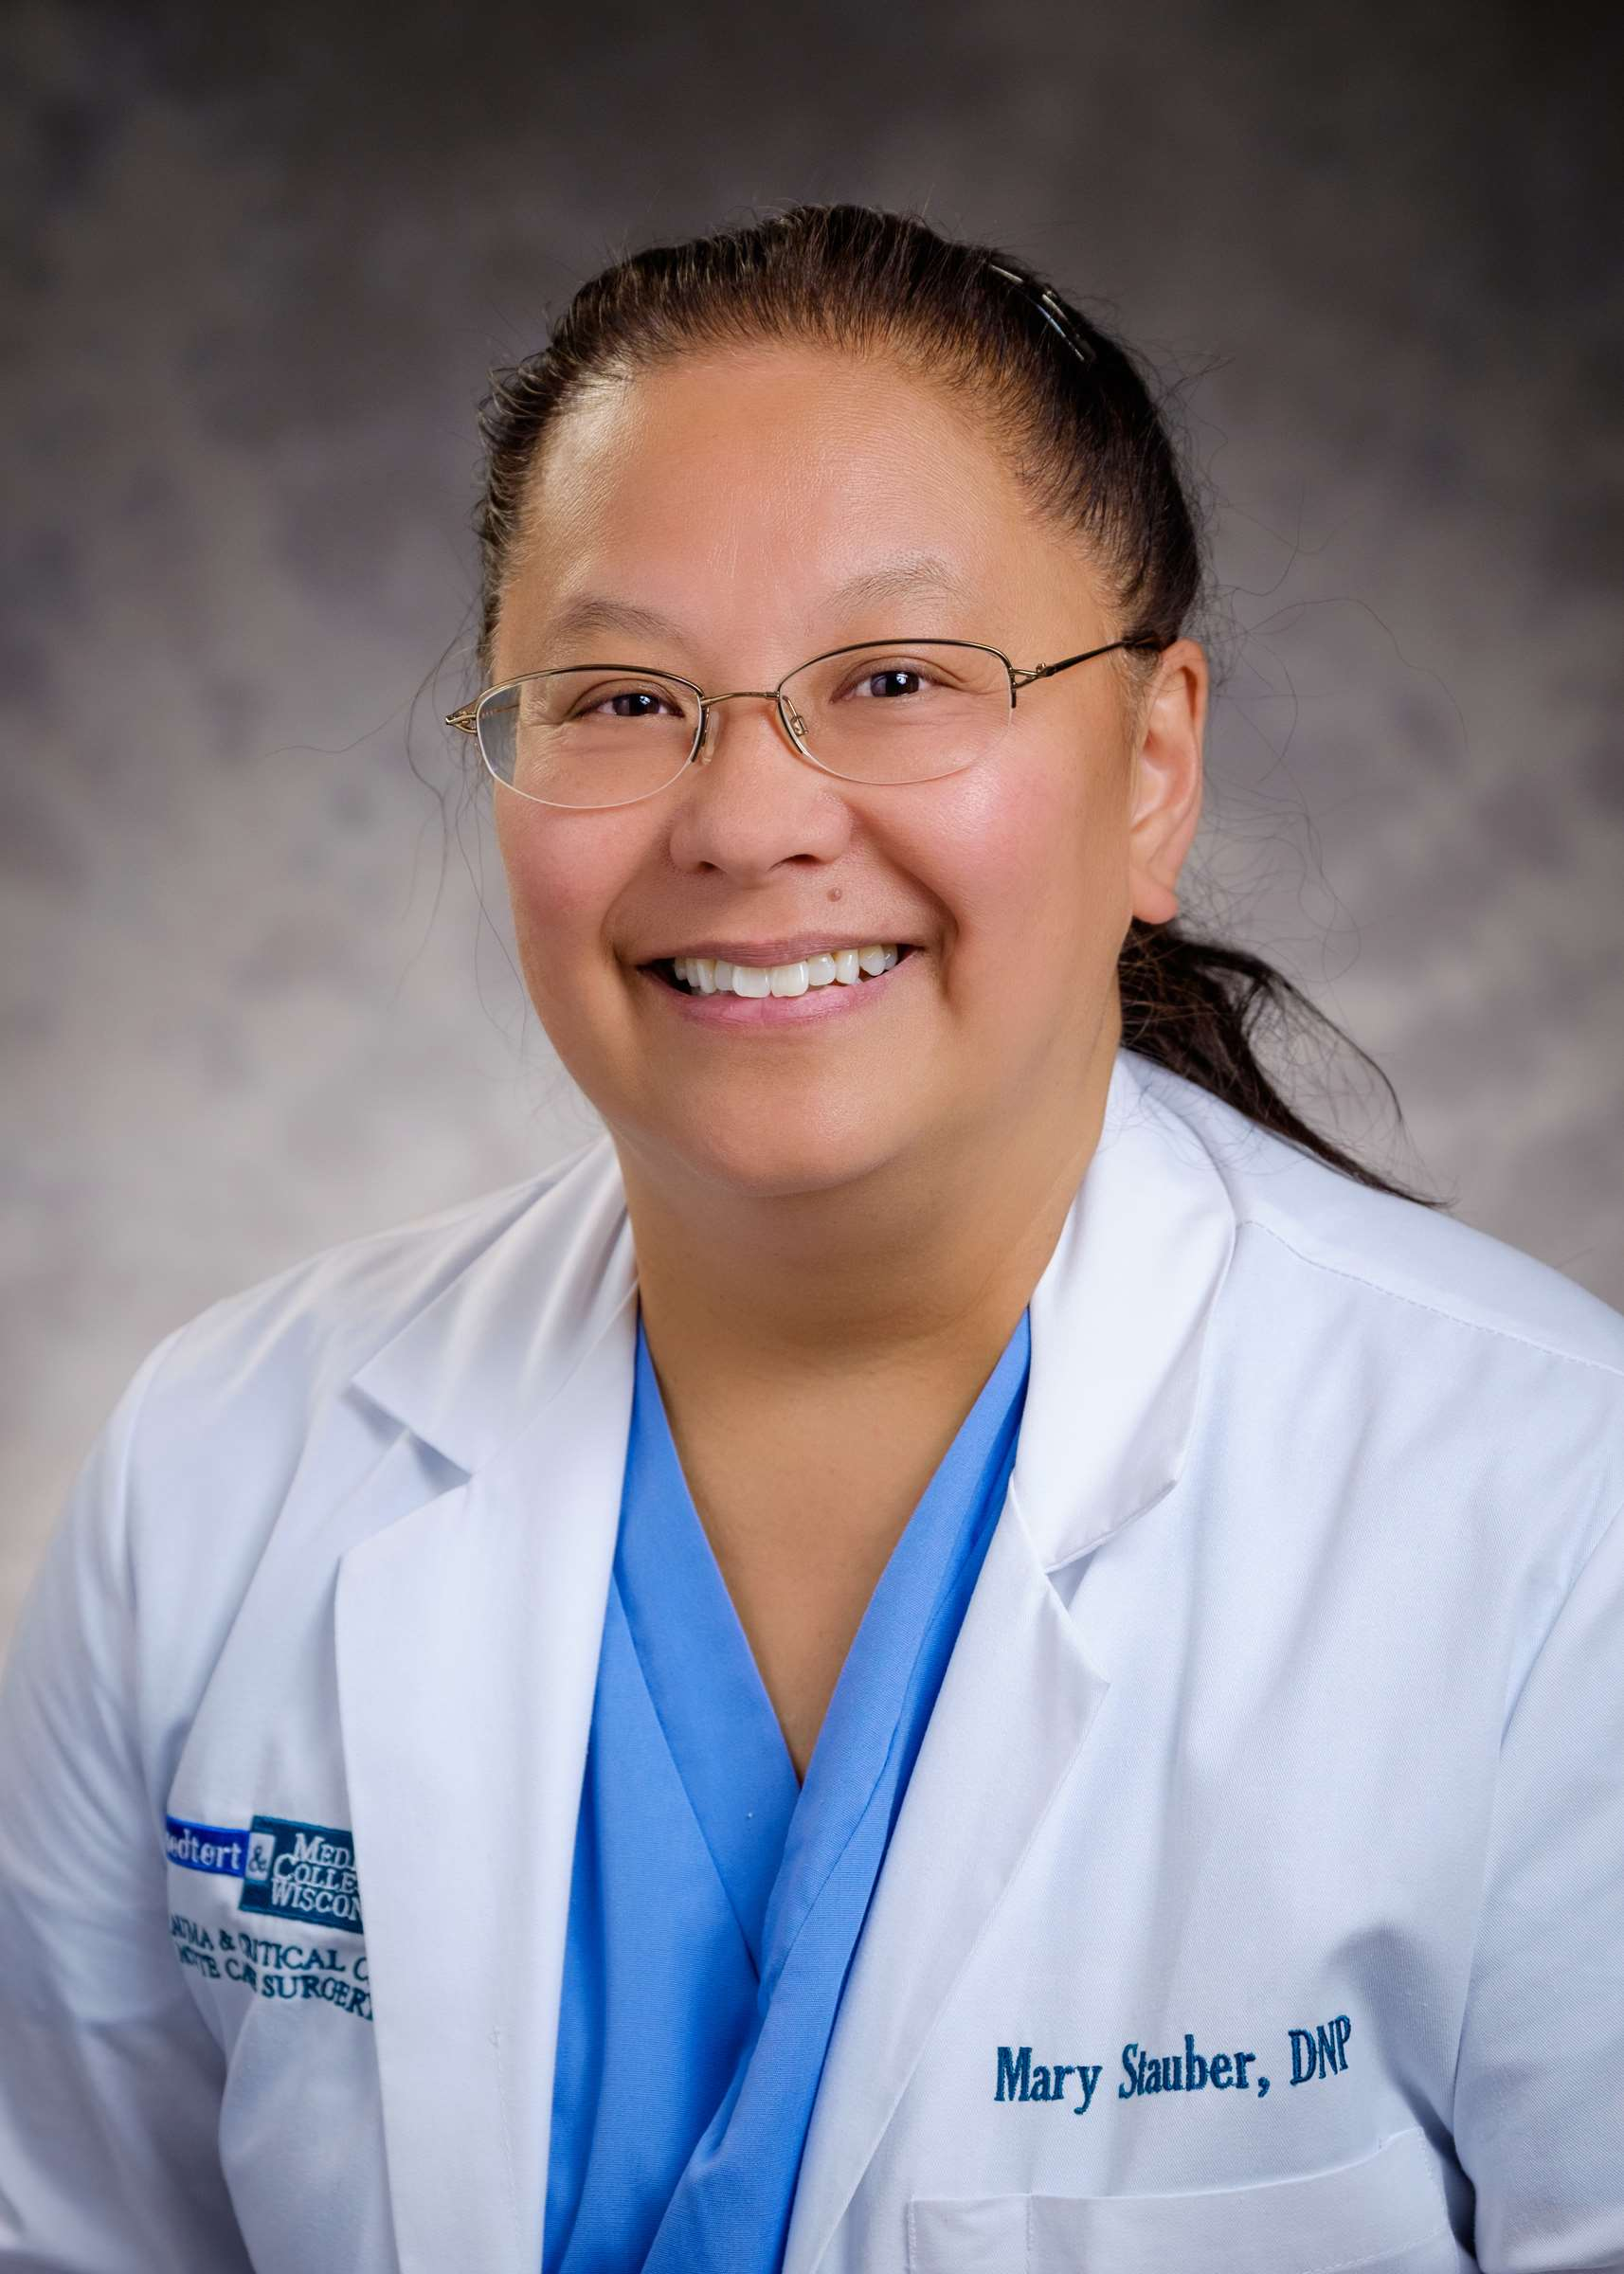 Mary A. Stauber, RN, AGACNP-BC, DNP